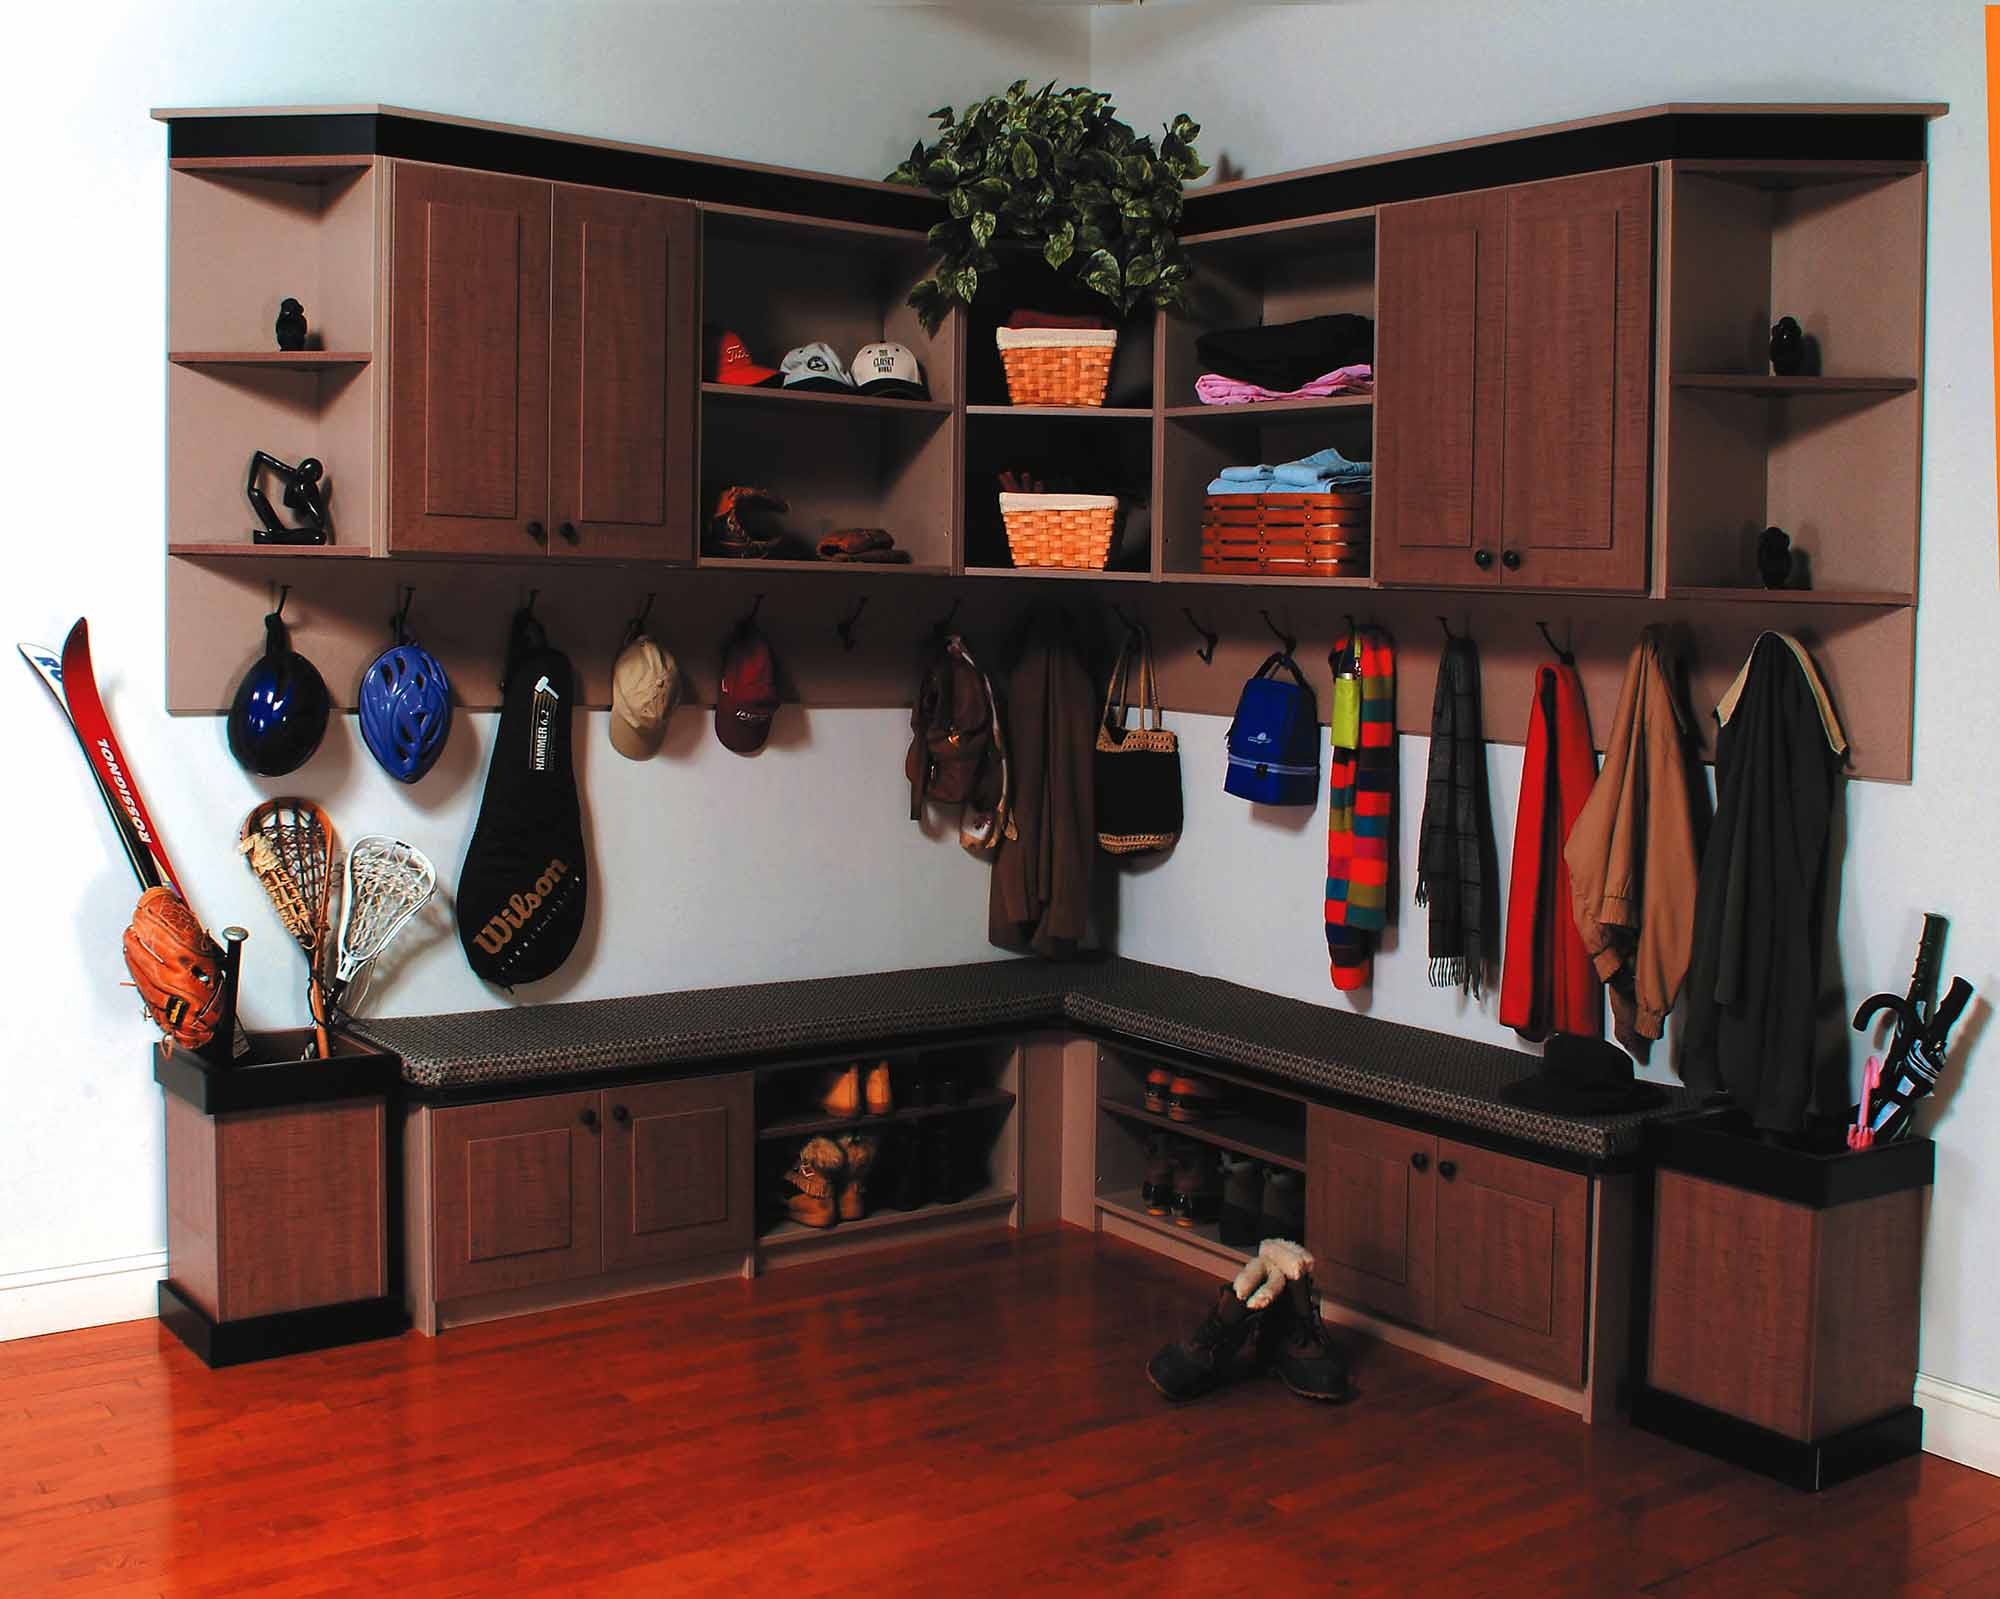 The Benefits of Having an Entryway or Mudroom with Ample Storage